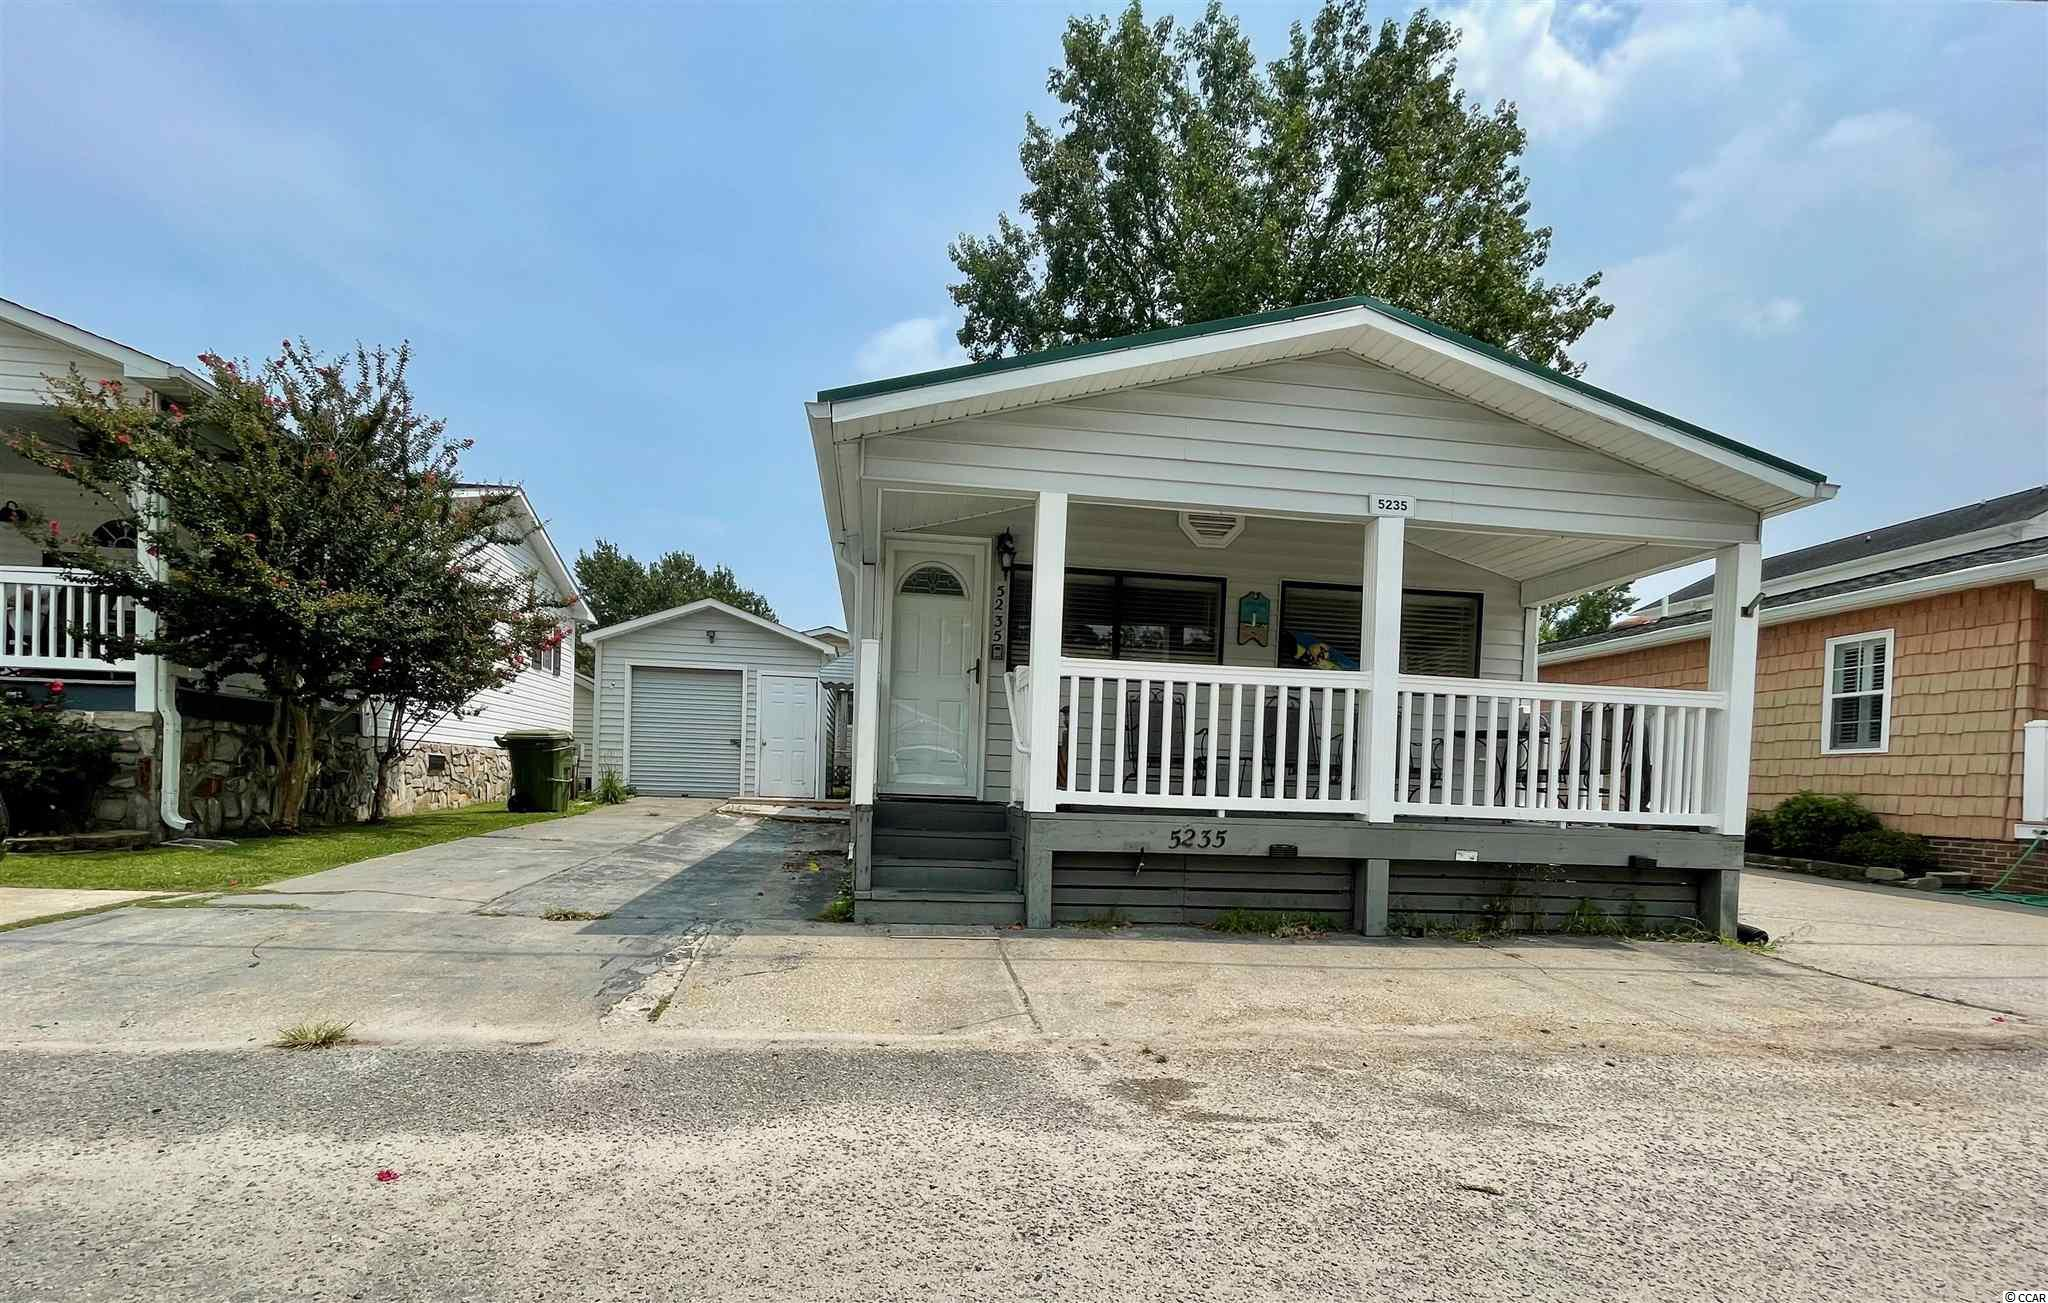 NICE 3 BEDROOM/2 BATH BEACH HOUSE W/ AN OPEN CONCEPT FLOOR PLAN, COVERED PORCH AND A DETACHED GARAGE LOCATED ON N. SANDLAPPER DRIVE IN OCEAN LAKES. Located in the highly desired 5,000 section, close to Sandlapper Lake and all amenities. Home comes fully furnished including golf cart! New metal roof in 2018. Home is on a rental program. Must honor 2021 rentals. Measurements are not guaranteed and should be verified by buyer's agent.   There is no HOA in Ocean Lakes however, all home sites are located on leased land, which are payed in semiannual installments due in January and July.   Amenities abound in Ocean Lakes' gated community and include one mile of pristine white sand beach, 24 hour security, trash pick-up, indoor/outdoor swimming pools, water park/slides, lazy river, splash zone, 2 full size basketball courts, miniature golf, fire pit, corn hole, shuffle board, horseshoes, ping-pong, Sandy's Down-under skatepark, recreation building, arcade, general store, golf cart rentals, Sandys Meet & Eat restaurant and more!